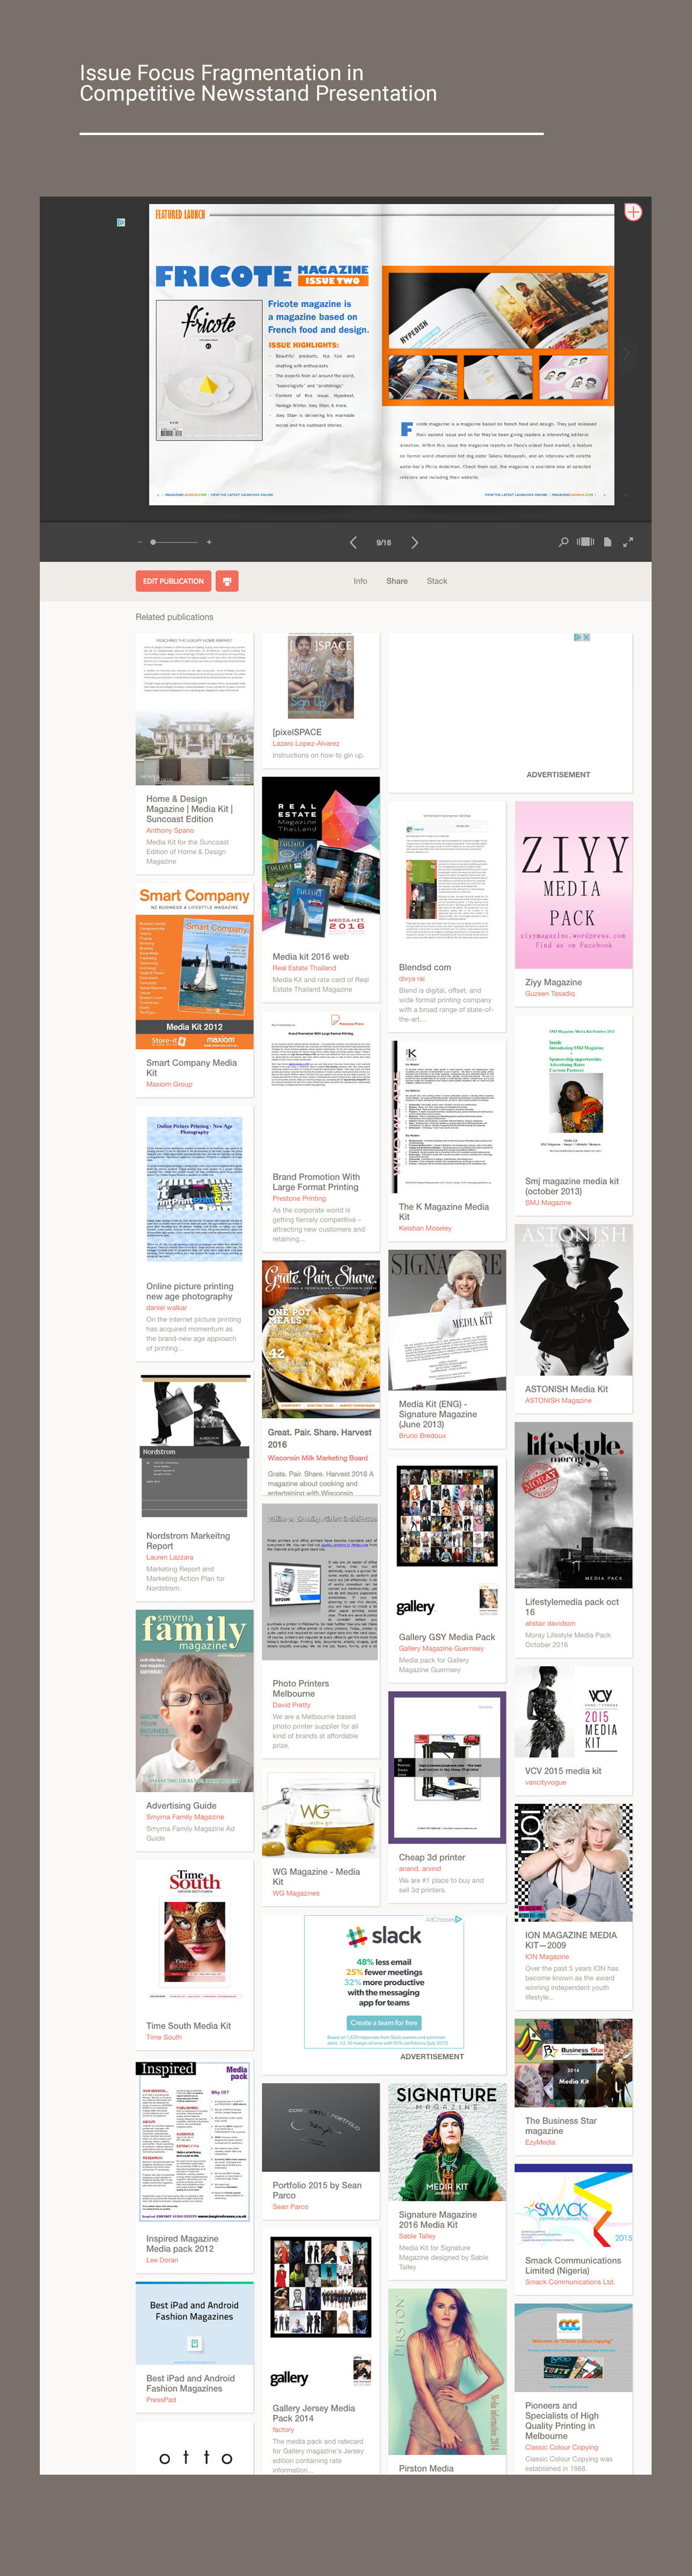 Digital Publishing Newsstand Marketplace Covers